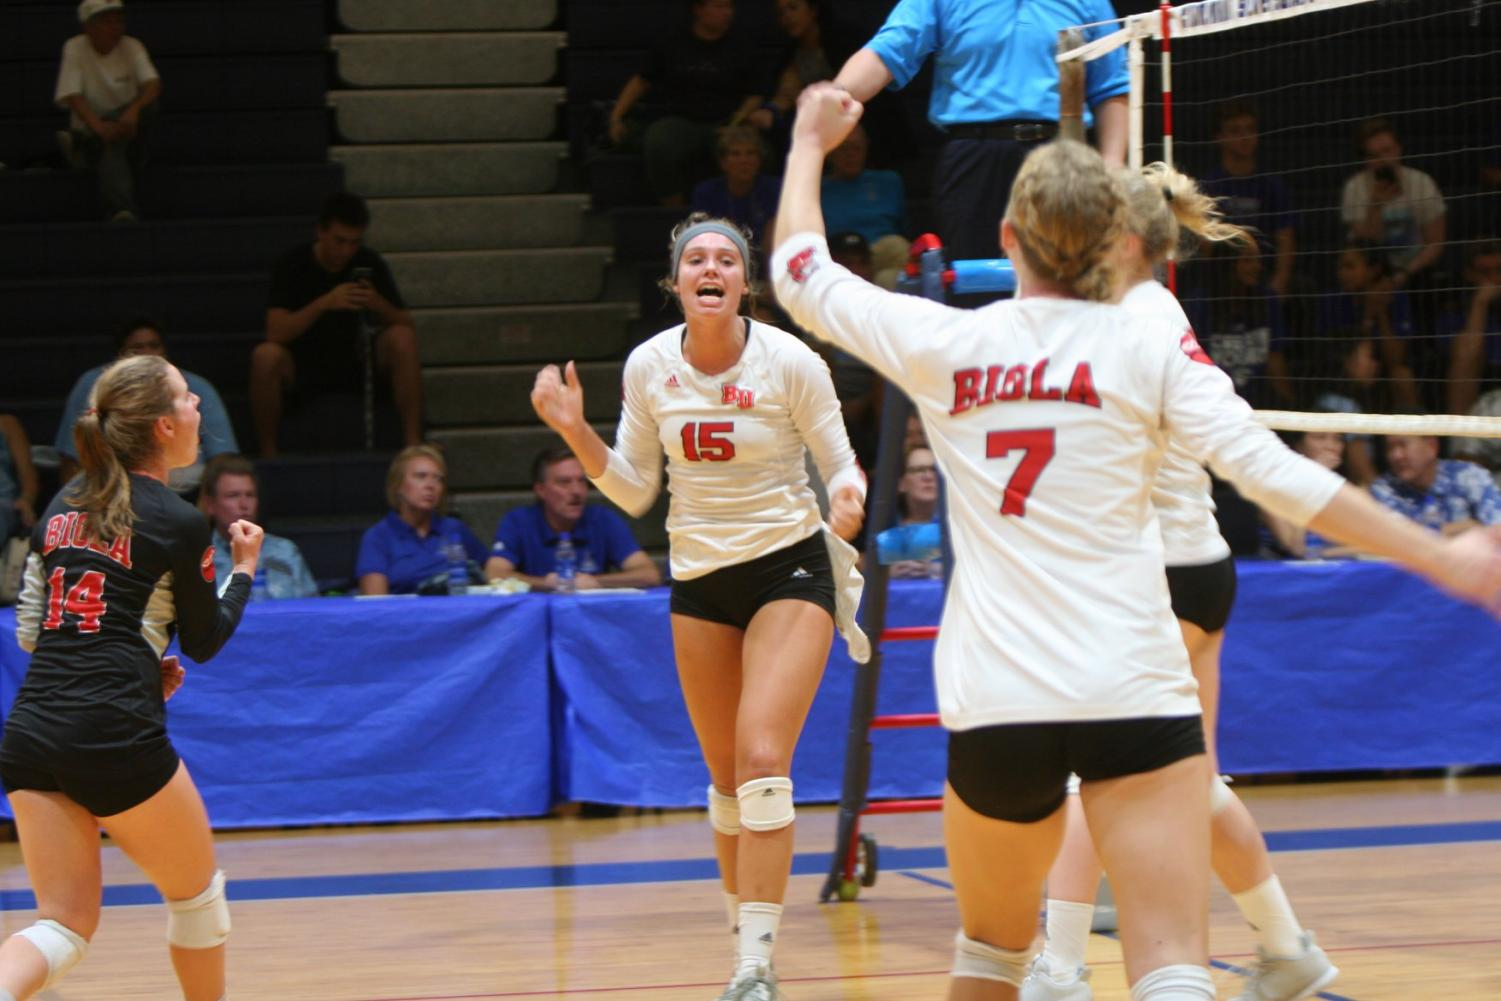 Redshirt sophomore outside hitter Christina DenBoer (15) celebrates during her teammates during Biola's win over Chaminade Oct. 9, 2018.